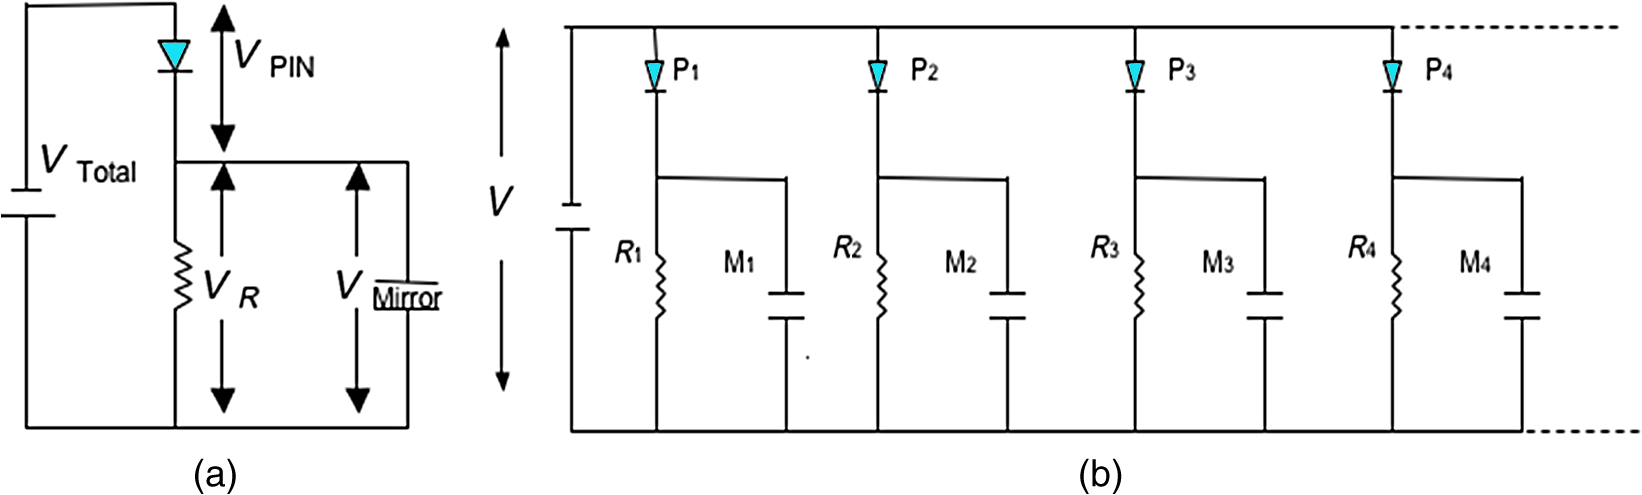 Fabrication And Characterization Of An All Optically Addressed Cascaded Form C Dry Contact Wiring Schematic Equivalent Circuit A Single Pixel With Voltage Drop Across The Components B Large Array Mirrors In Parallel